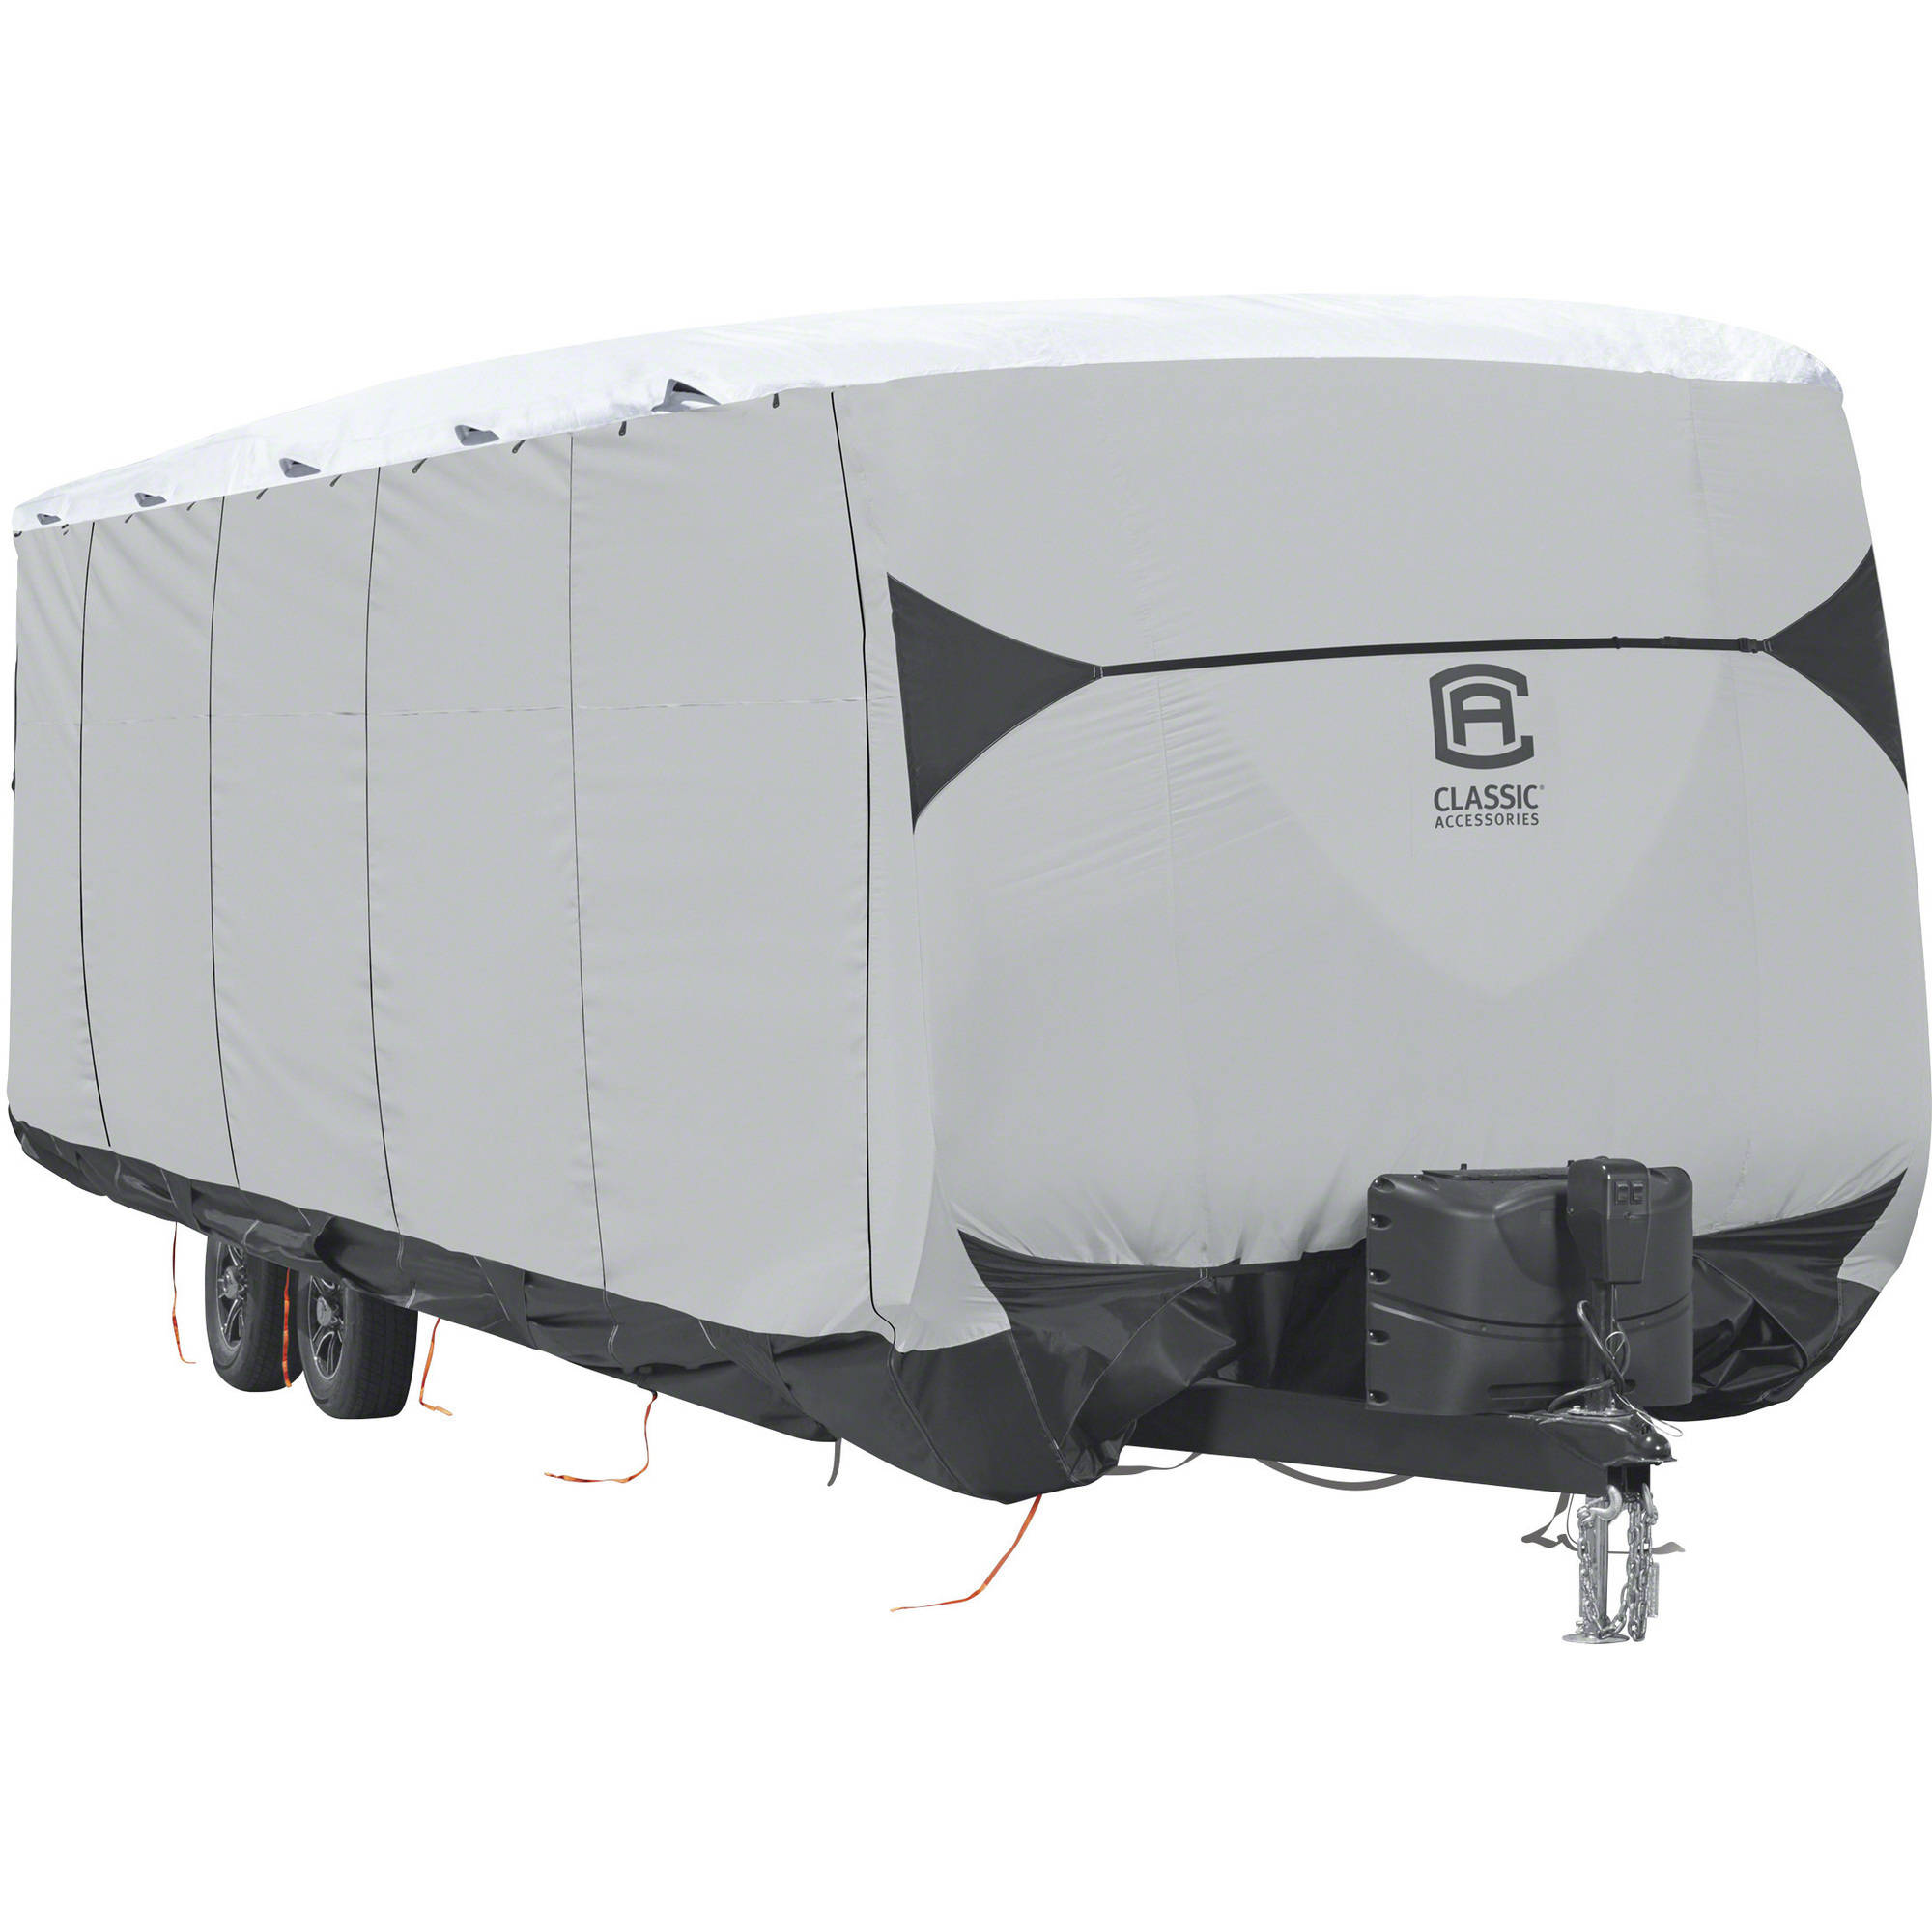 SkyShield Deluxe Tyvek Travel Trailer Cover, Fits 15' - 18' Trailers - Water Repellent Tyvek RV Cover, Classic Accessories